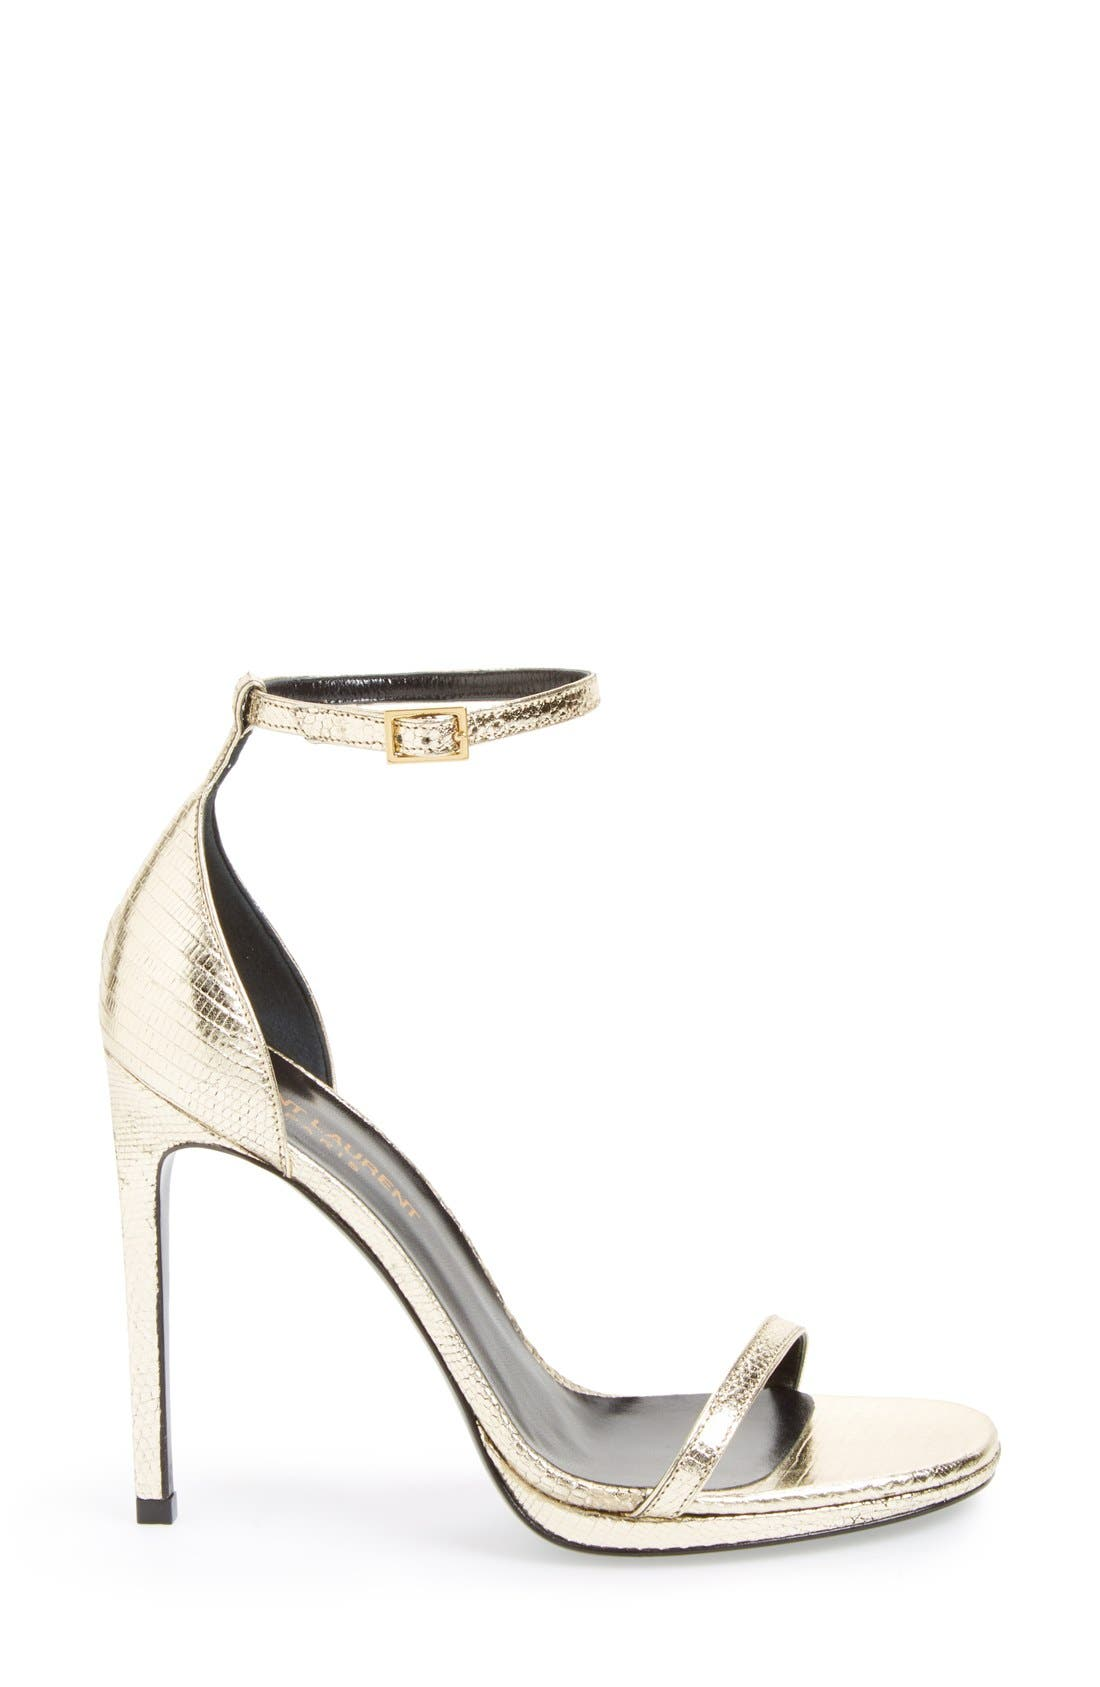 Alternate Image 4  - Saint Laurent 'Jane' Metallic Lizard Embossed Ankle Strap Sandal (Women)